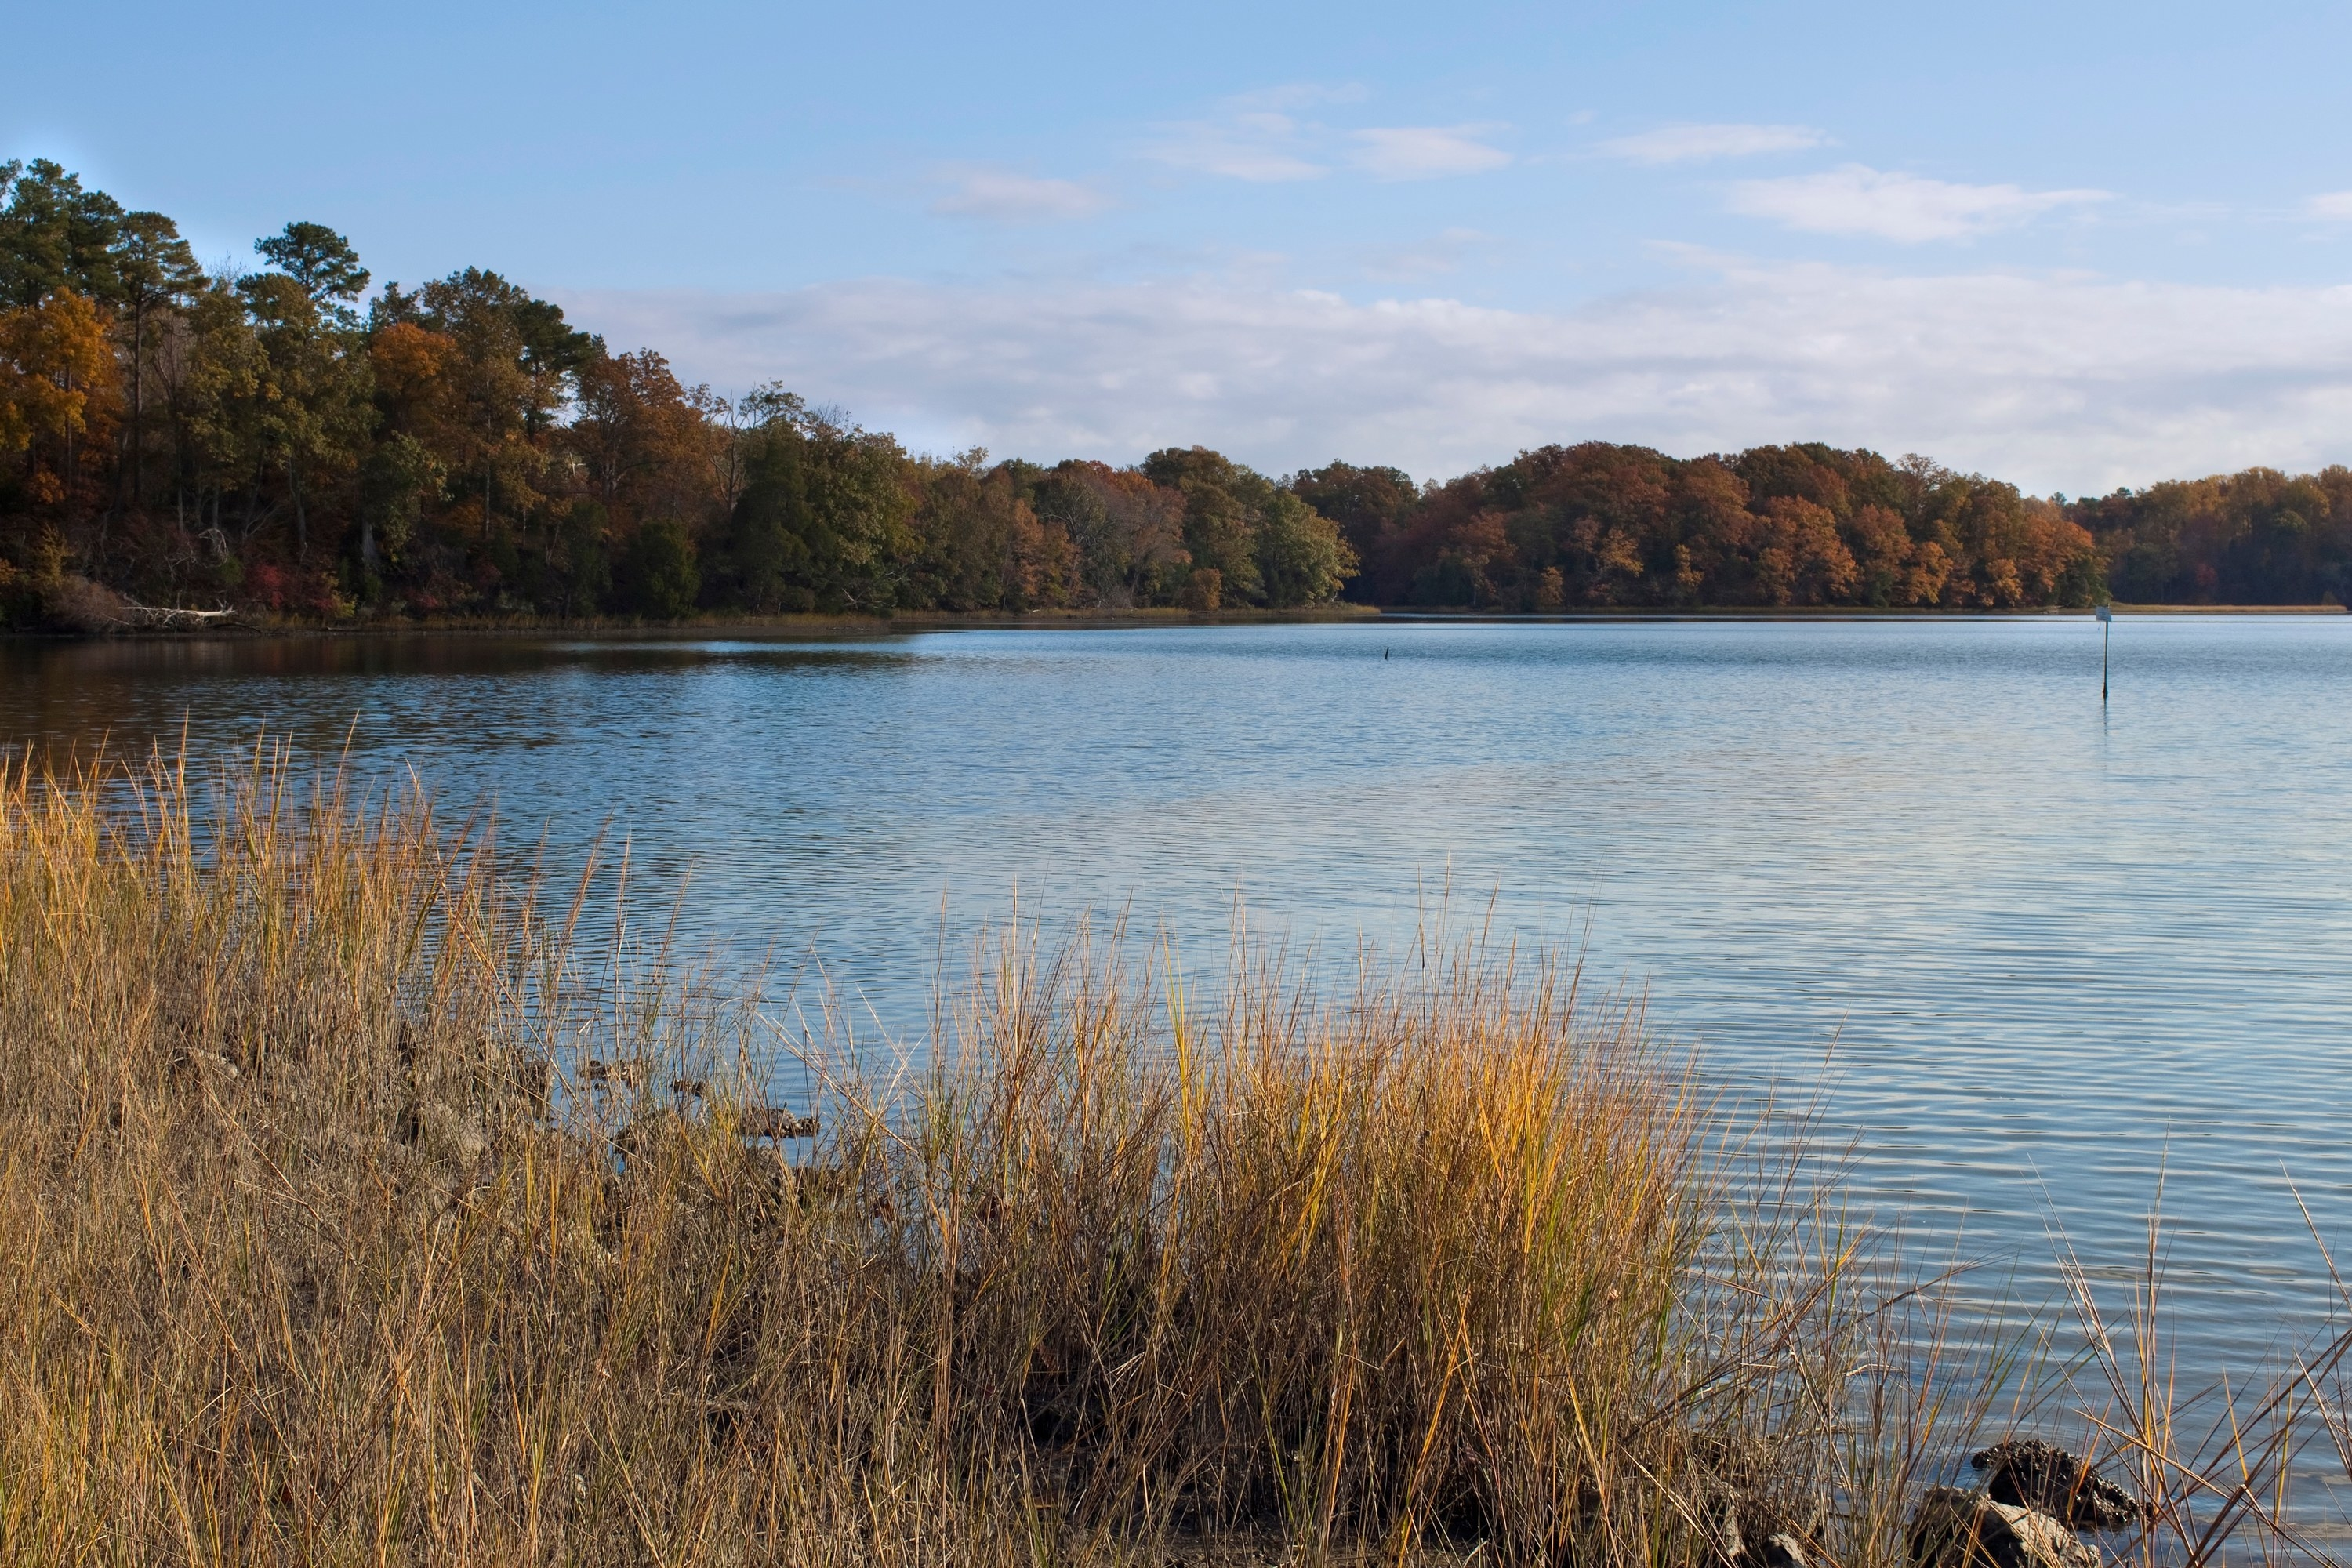 A clear and calm part of the Chesapeake bay is foregrounded by dry shrubbery.